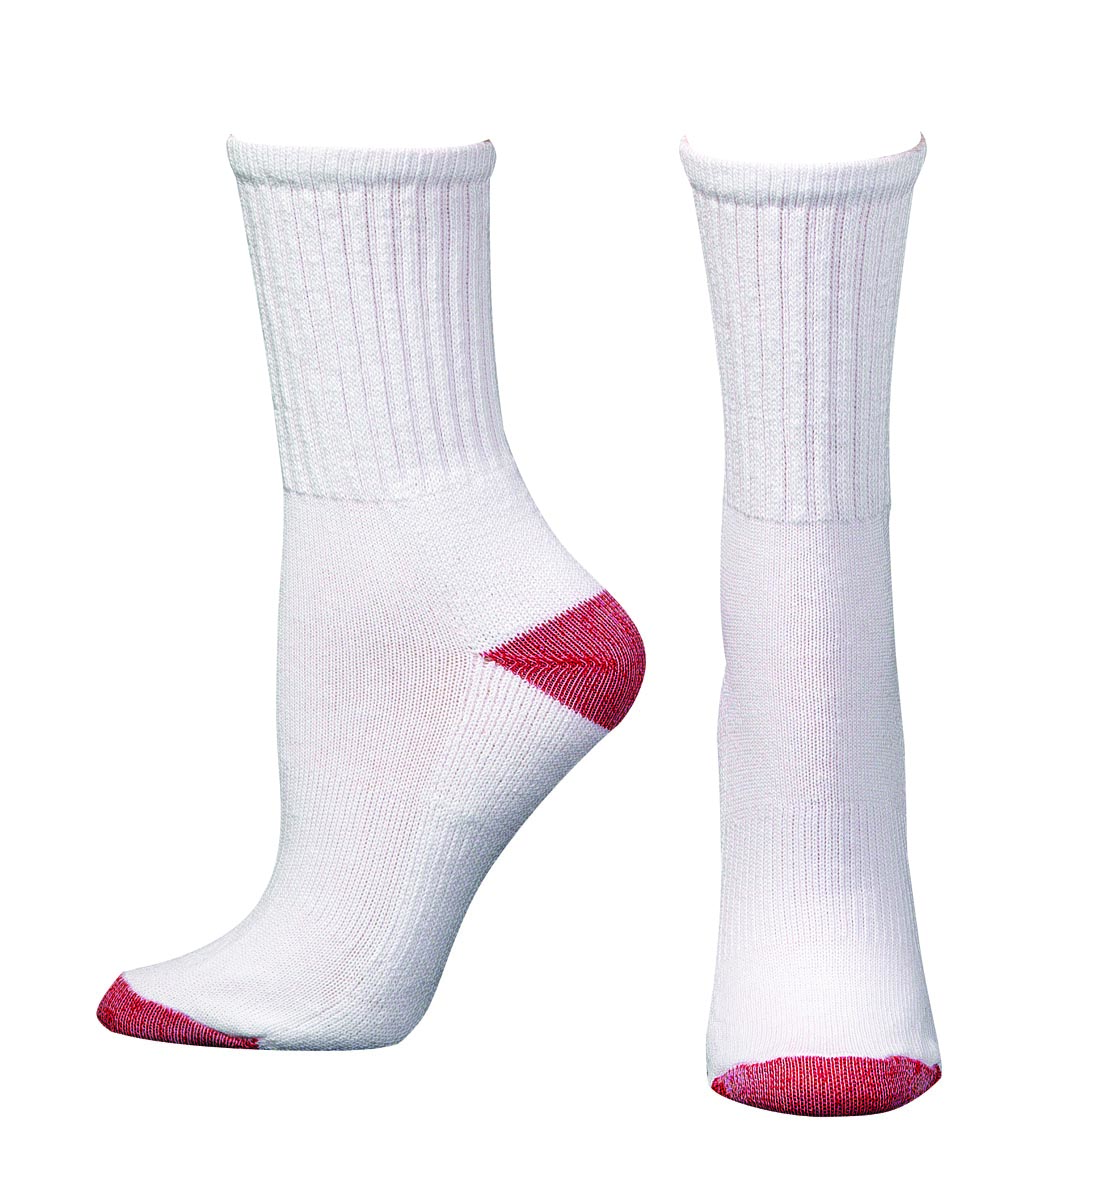 Boot Doctor Youth Crew Socks, 3 pack